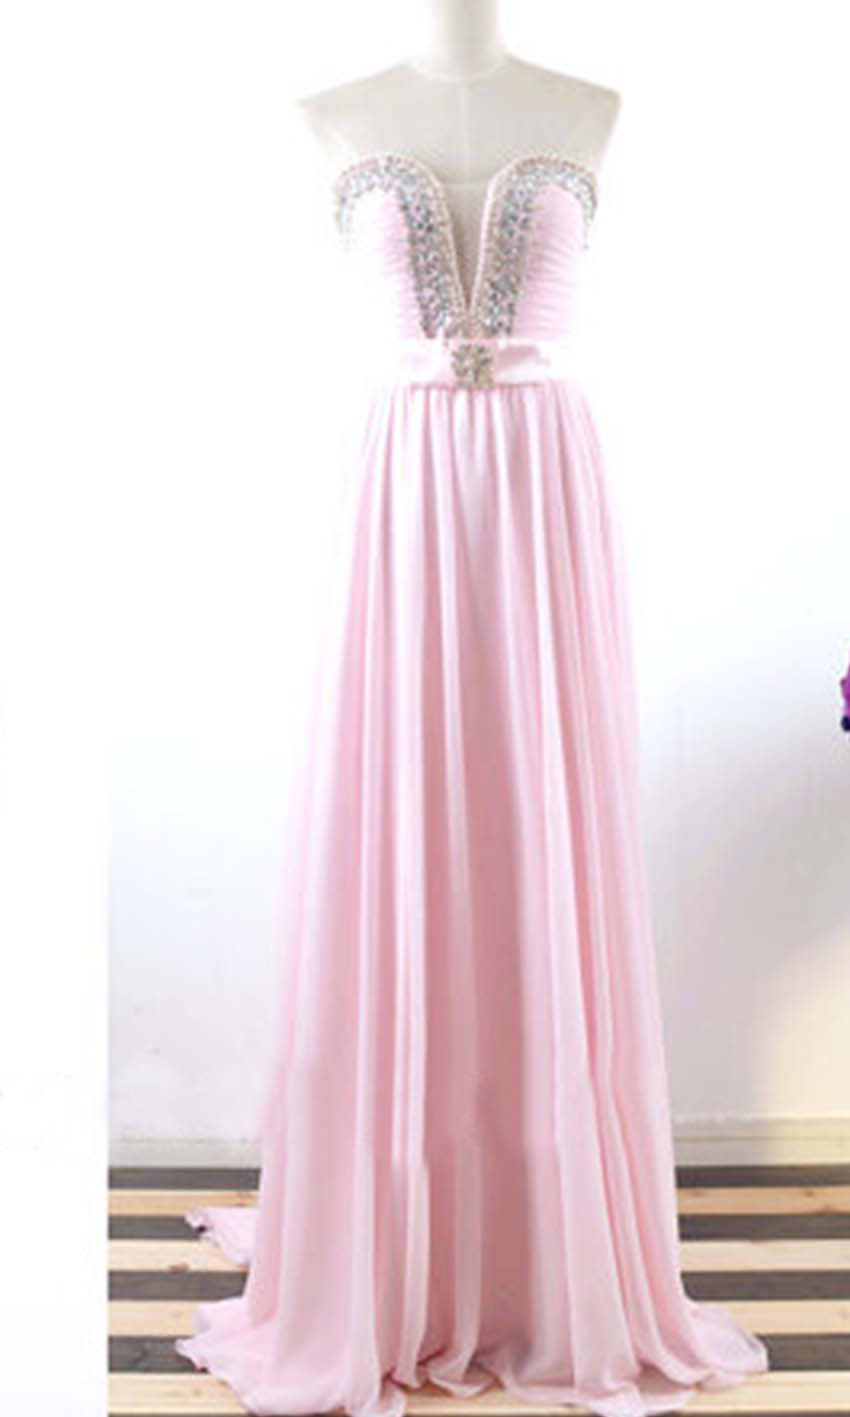 Crystal Sheer Plunge Long Pink Prom Dresses KSP367 [KSP367] - £98.00 ...